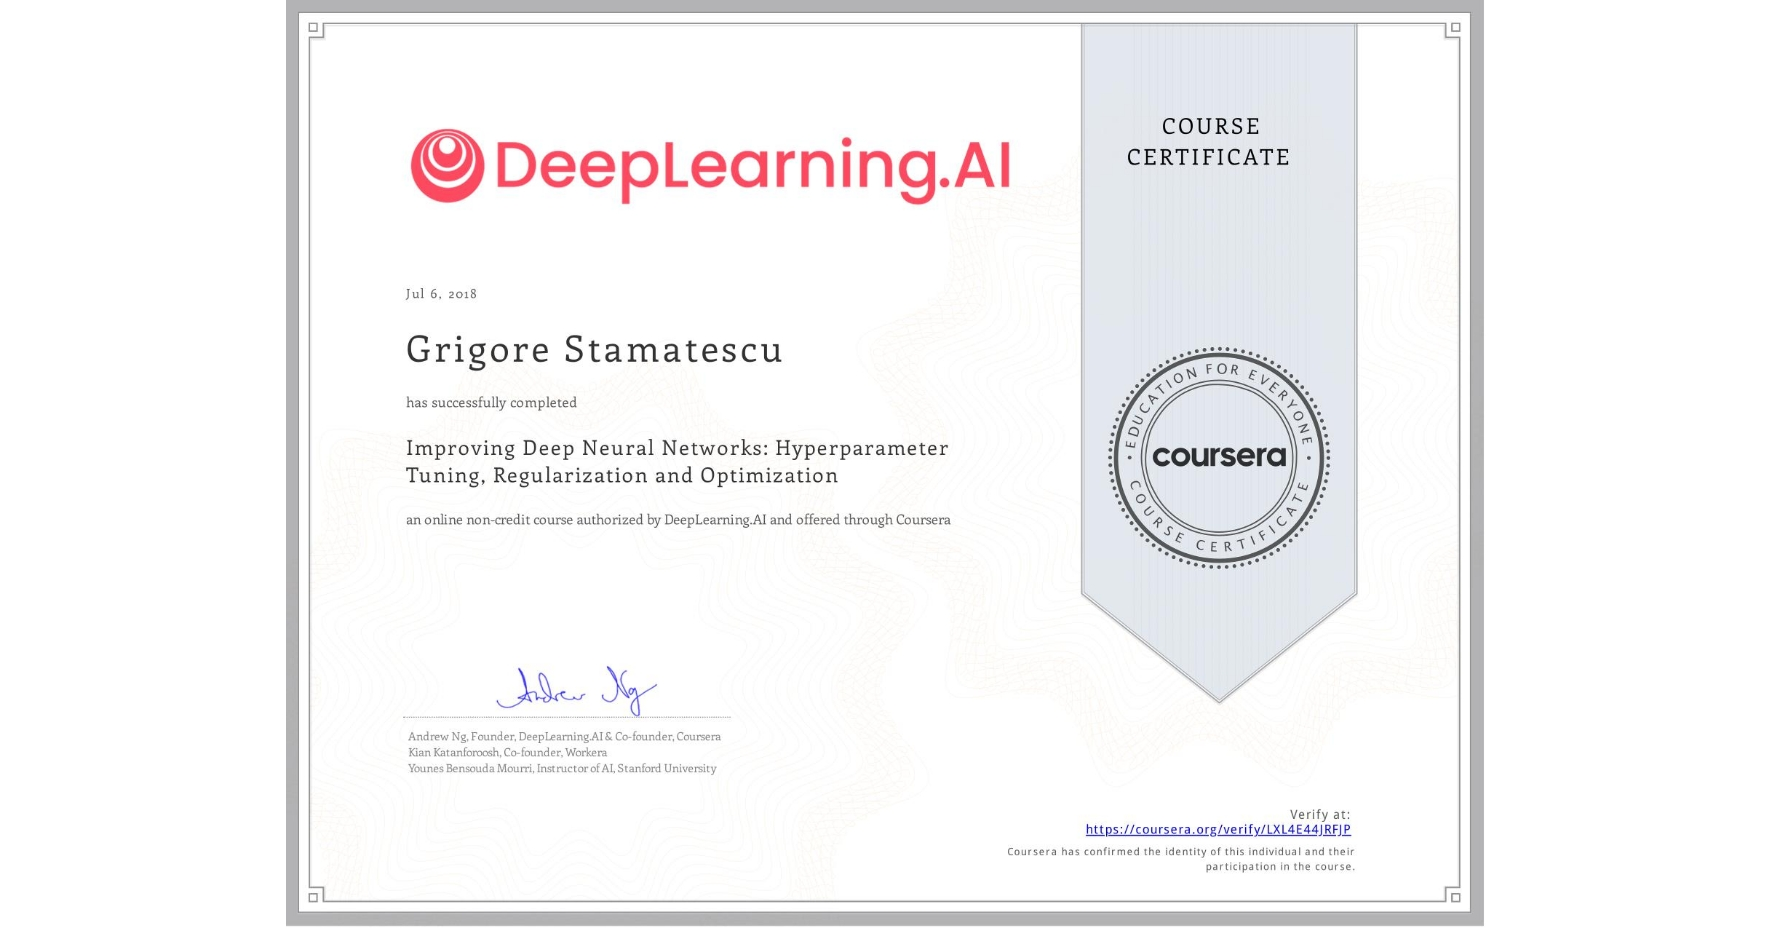 View certificate for Grigore Stamatescu, Improving Deep Neural Networks: Hyperparameter Tuning, Regularization and Optimization, an online non-credit course authorized by DeepLearning.AI and offered through Coursera